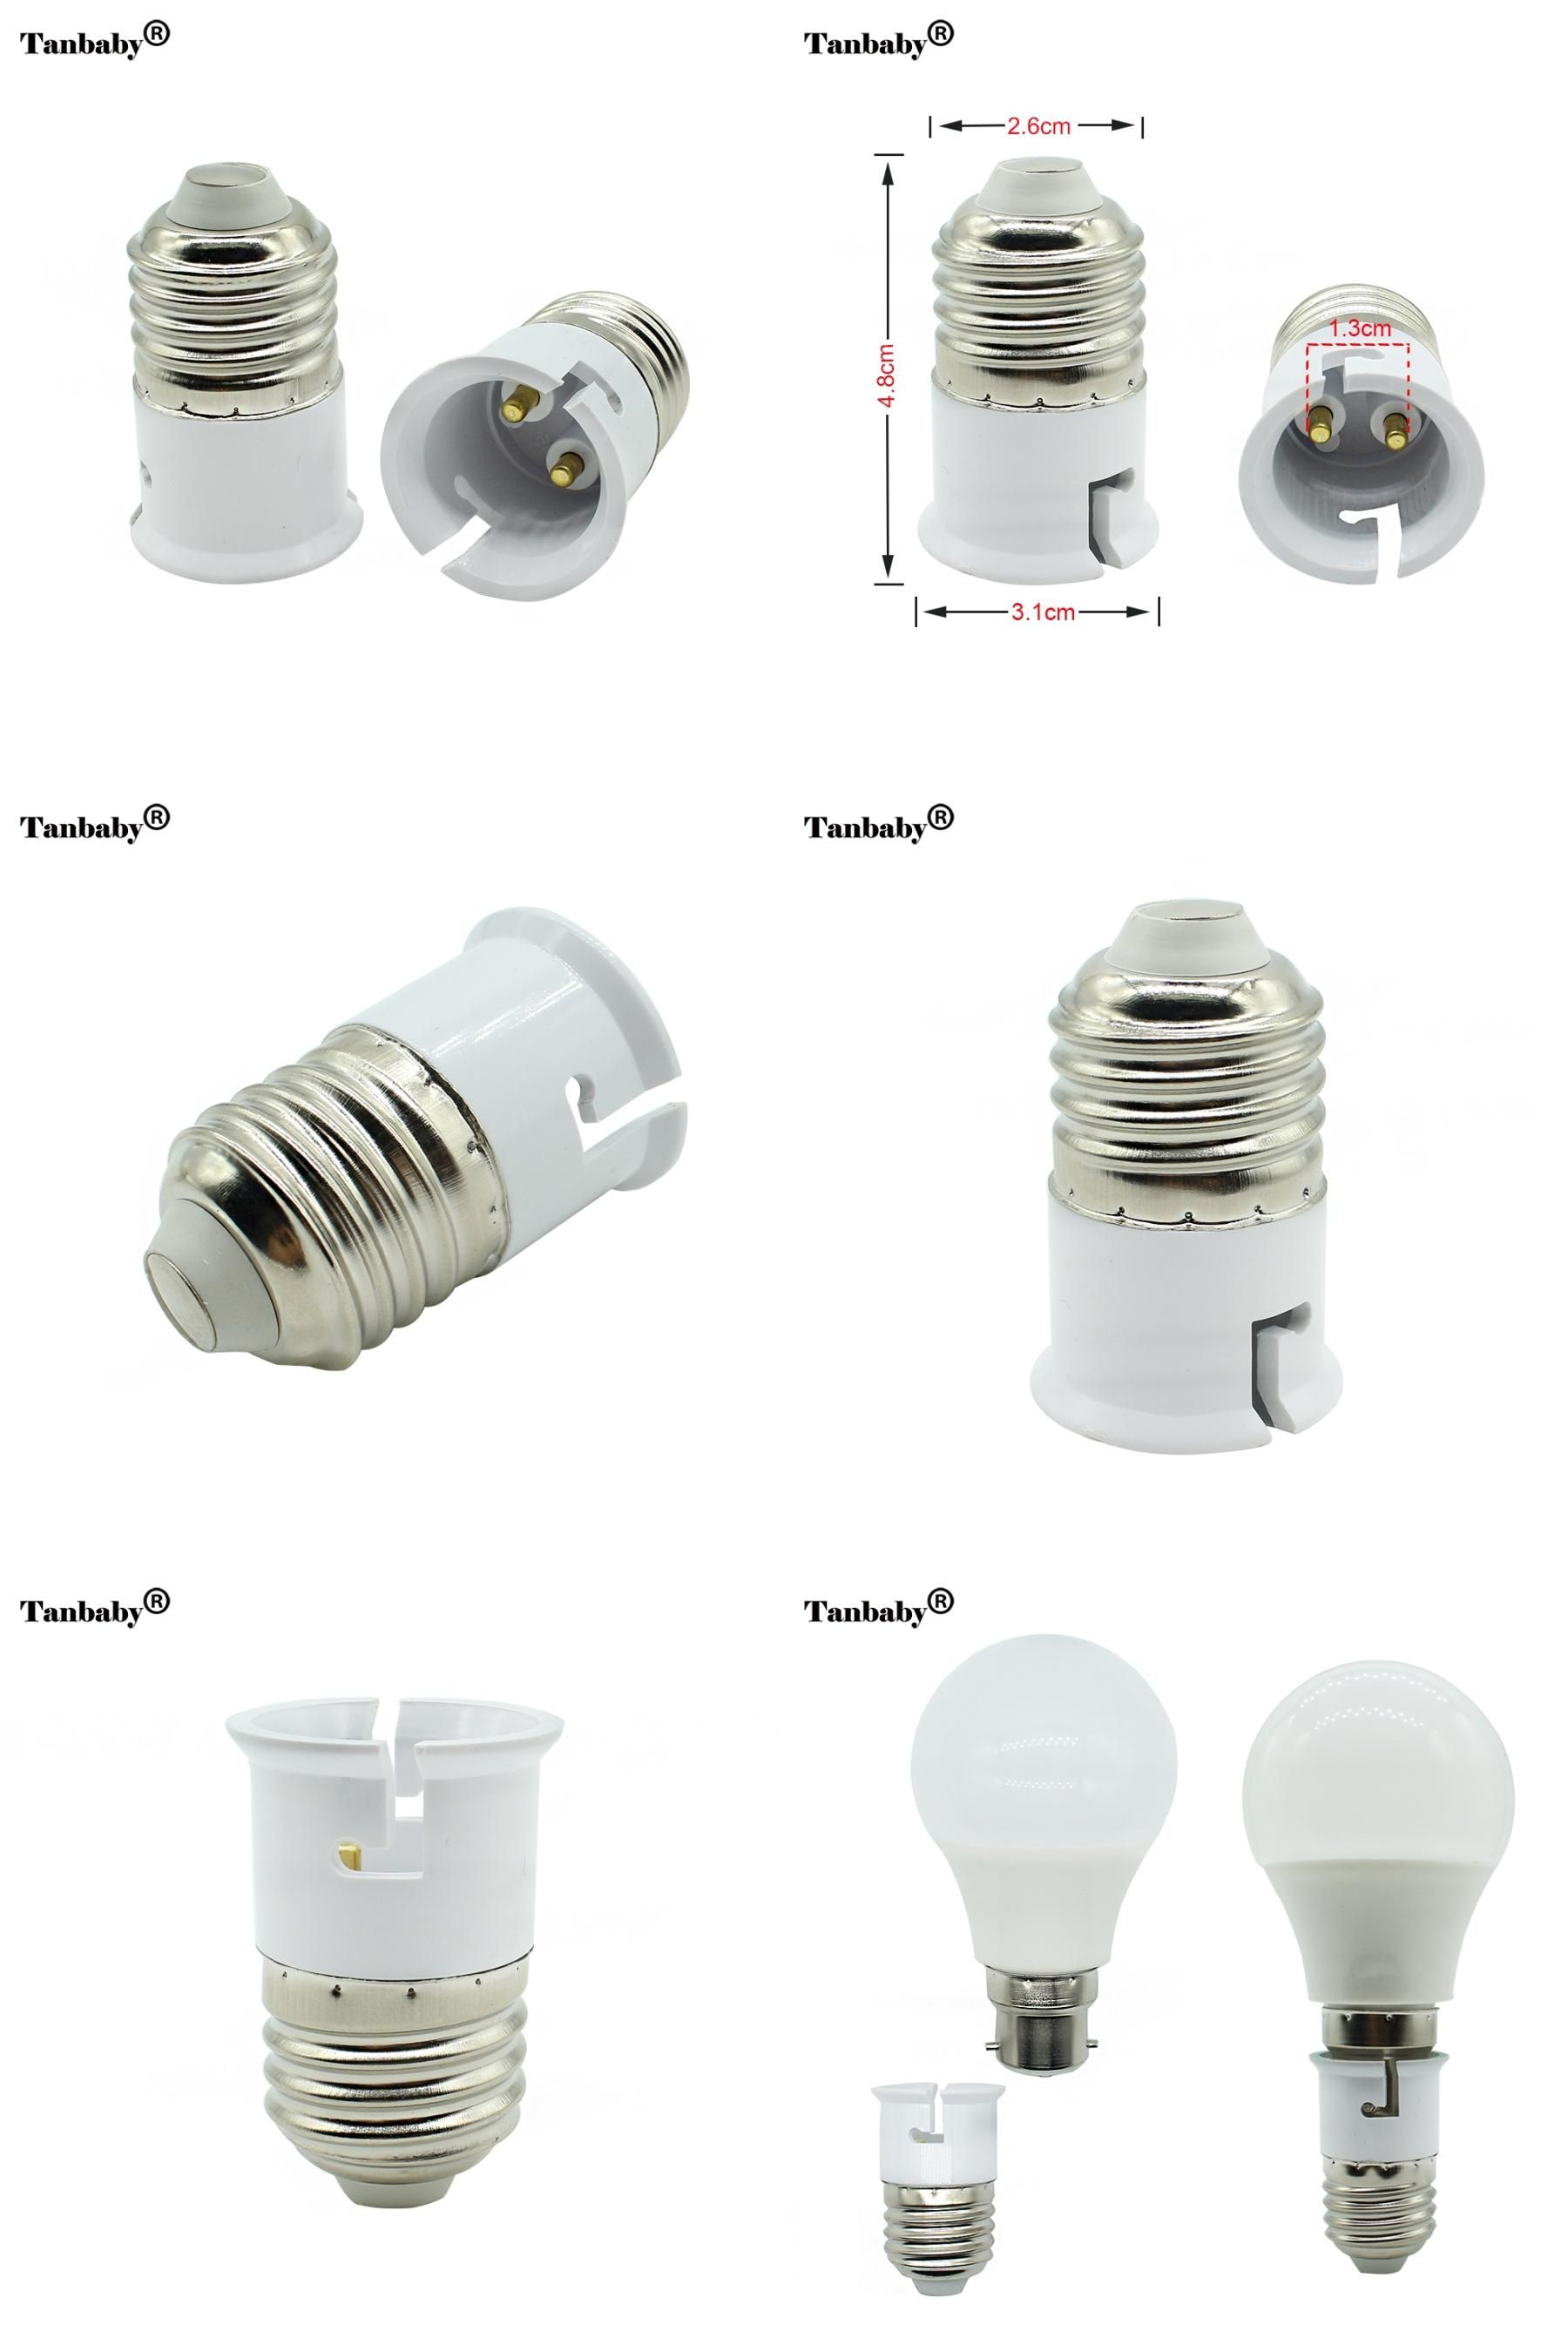 Visit To Buy Tanbaby 1pcs E27 To B22 Fireproof Material Lamp Holder Converter Socket Base Type Adapter Conversion Light Bulb Adv Lamp Bulb Bulb Adapter Lamp